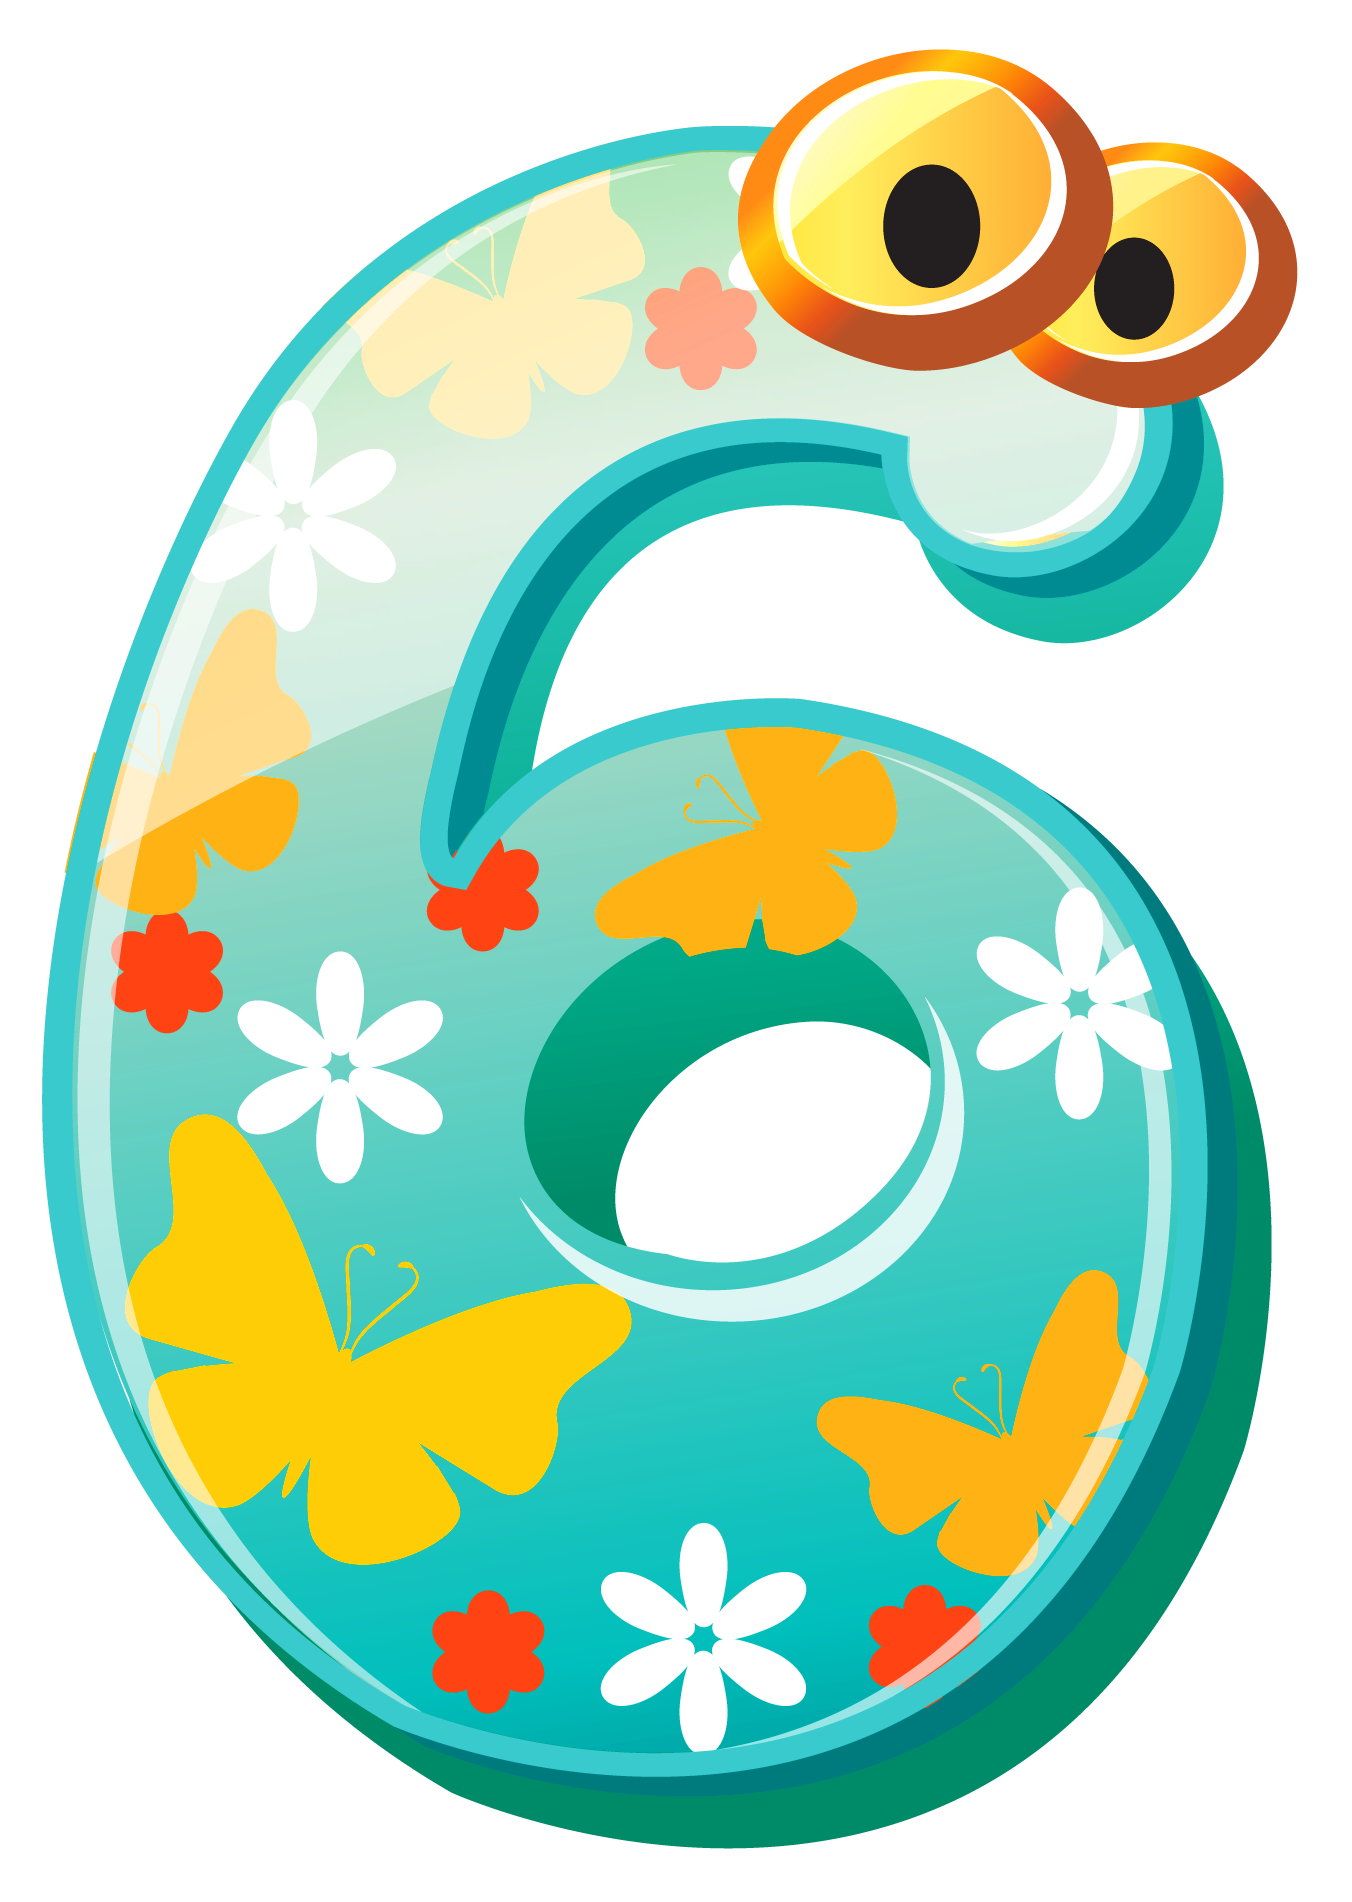 Numbers number six image. Ham clipart cute